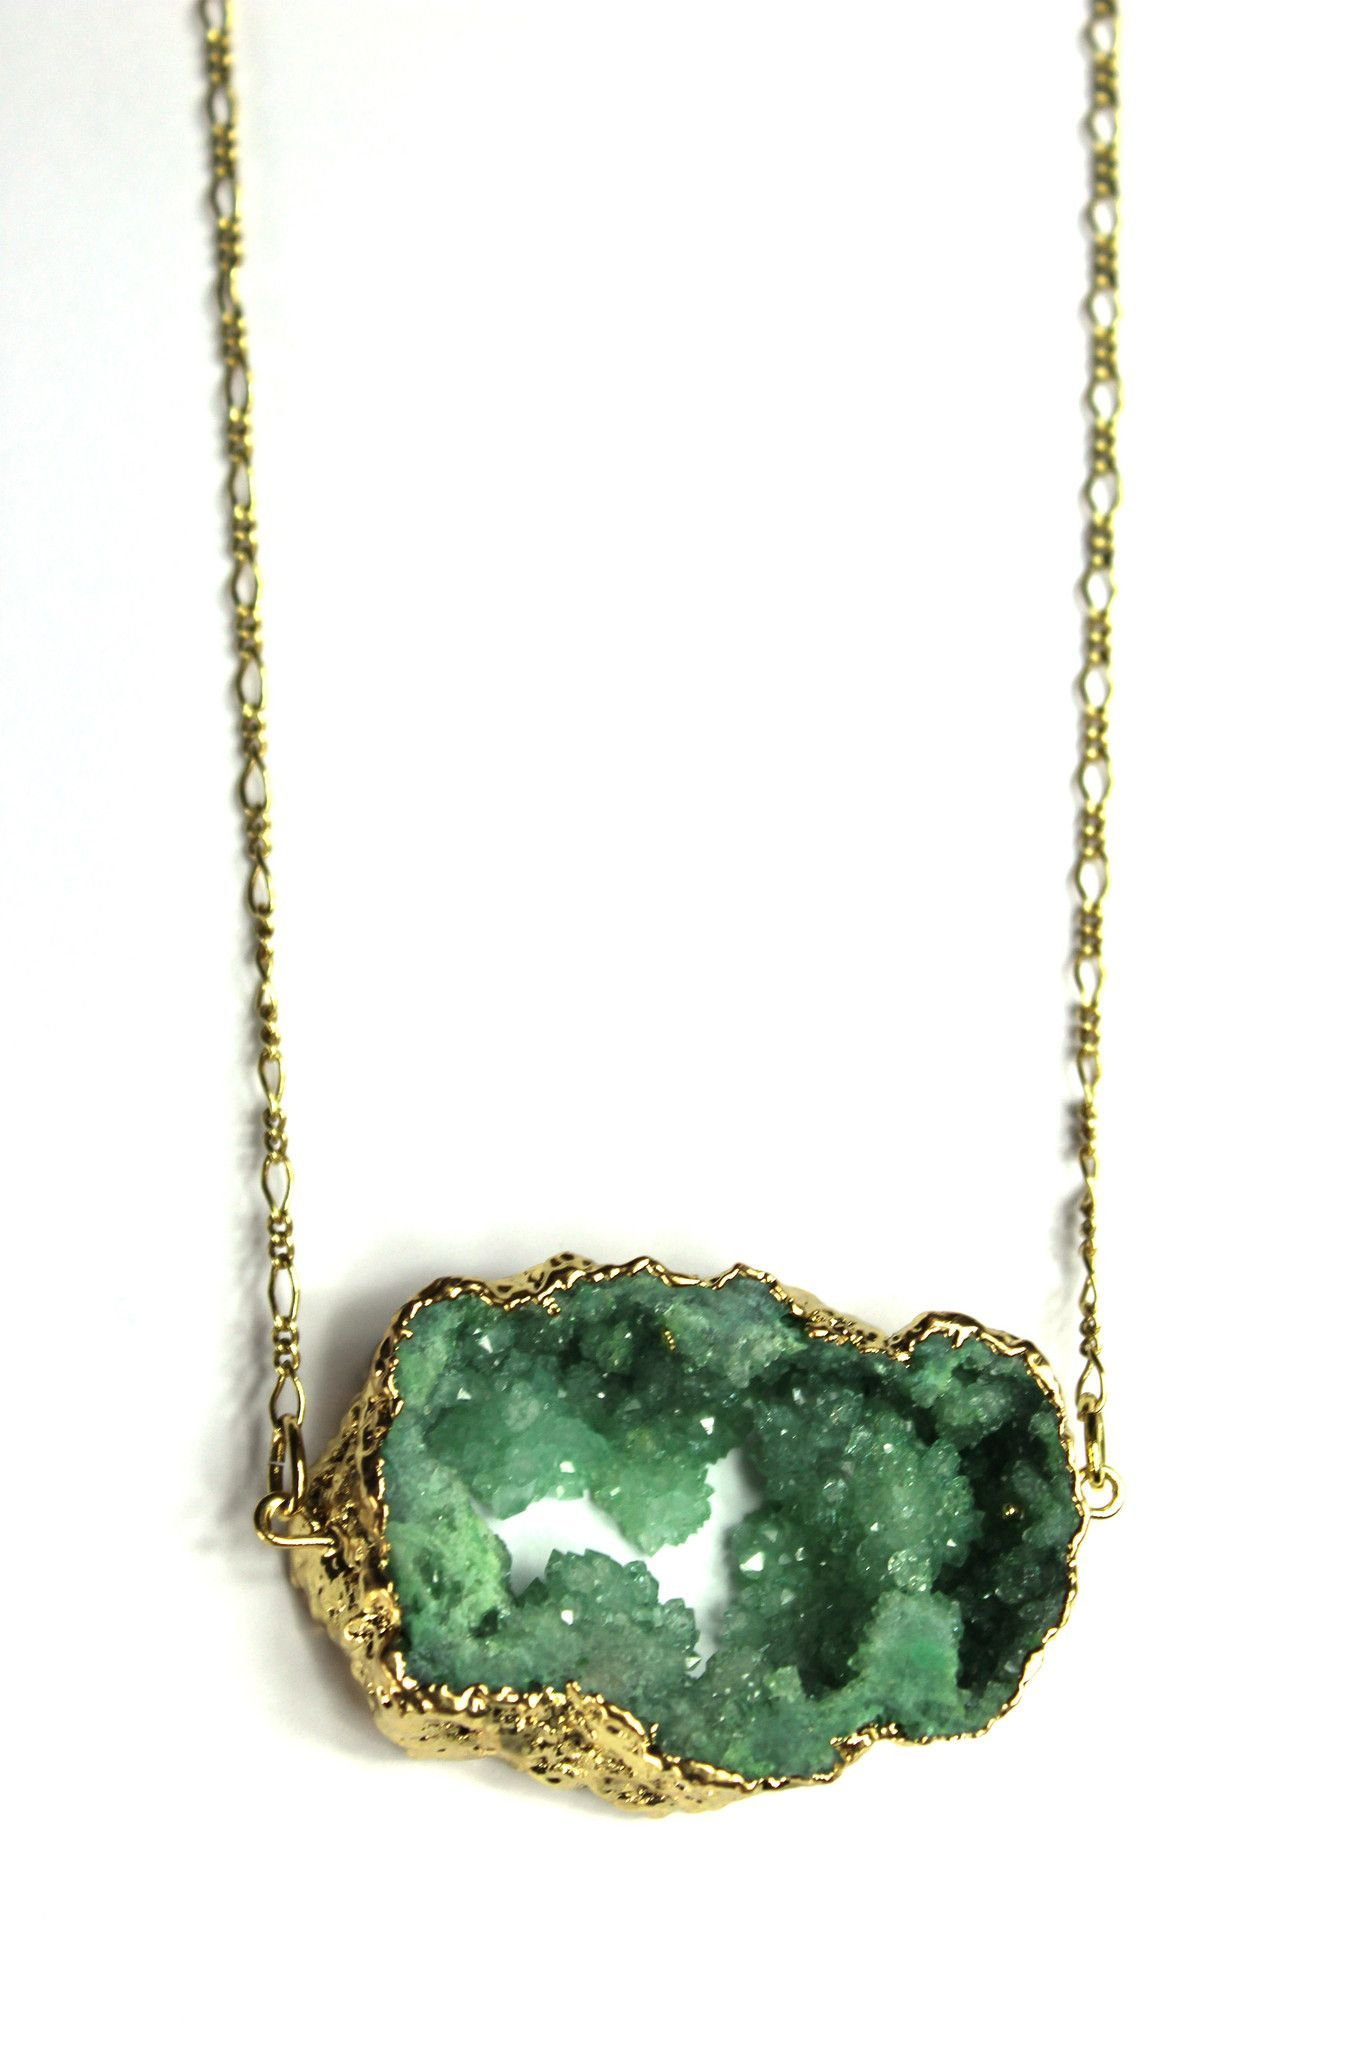 Green Druzy Necklace Handmade Jewelry